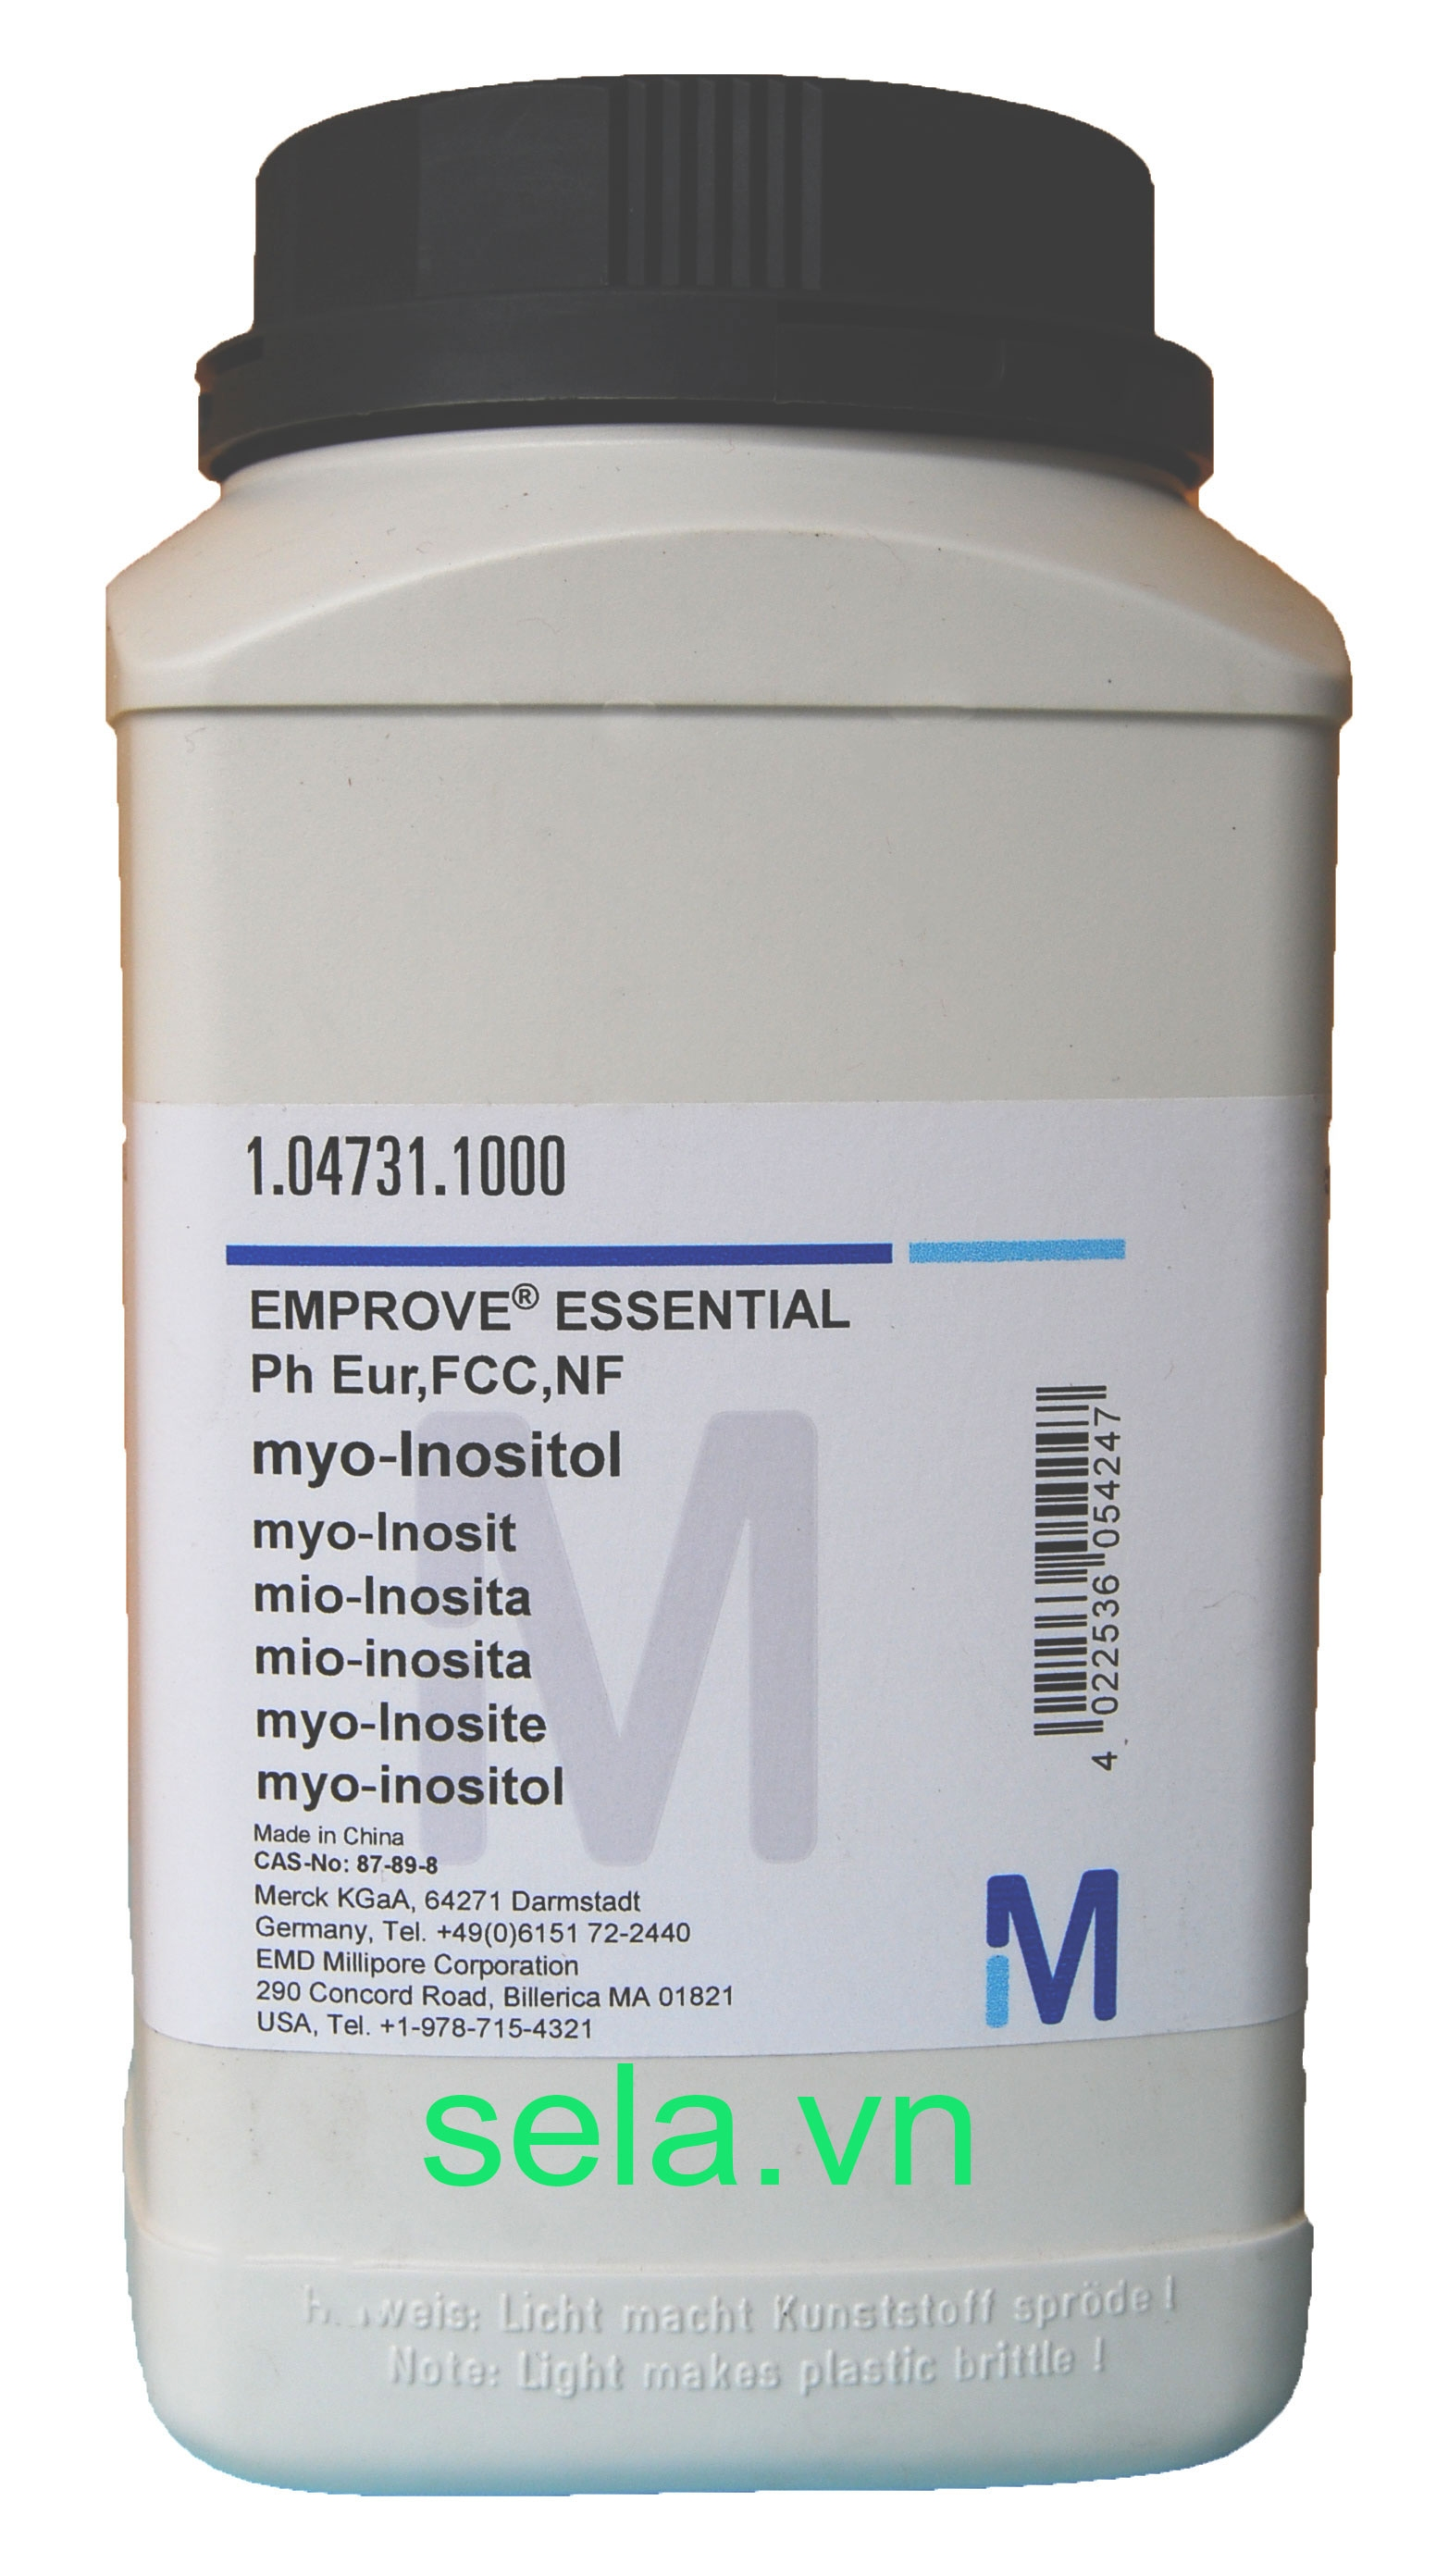 myo-Inositol EMPROVE® ESSENTIAL Ph Eur,FCC,NF